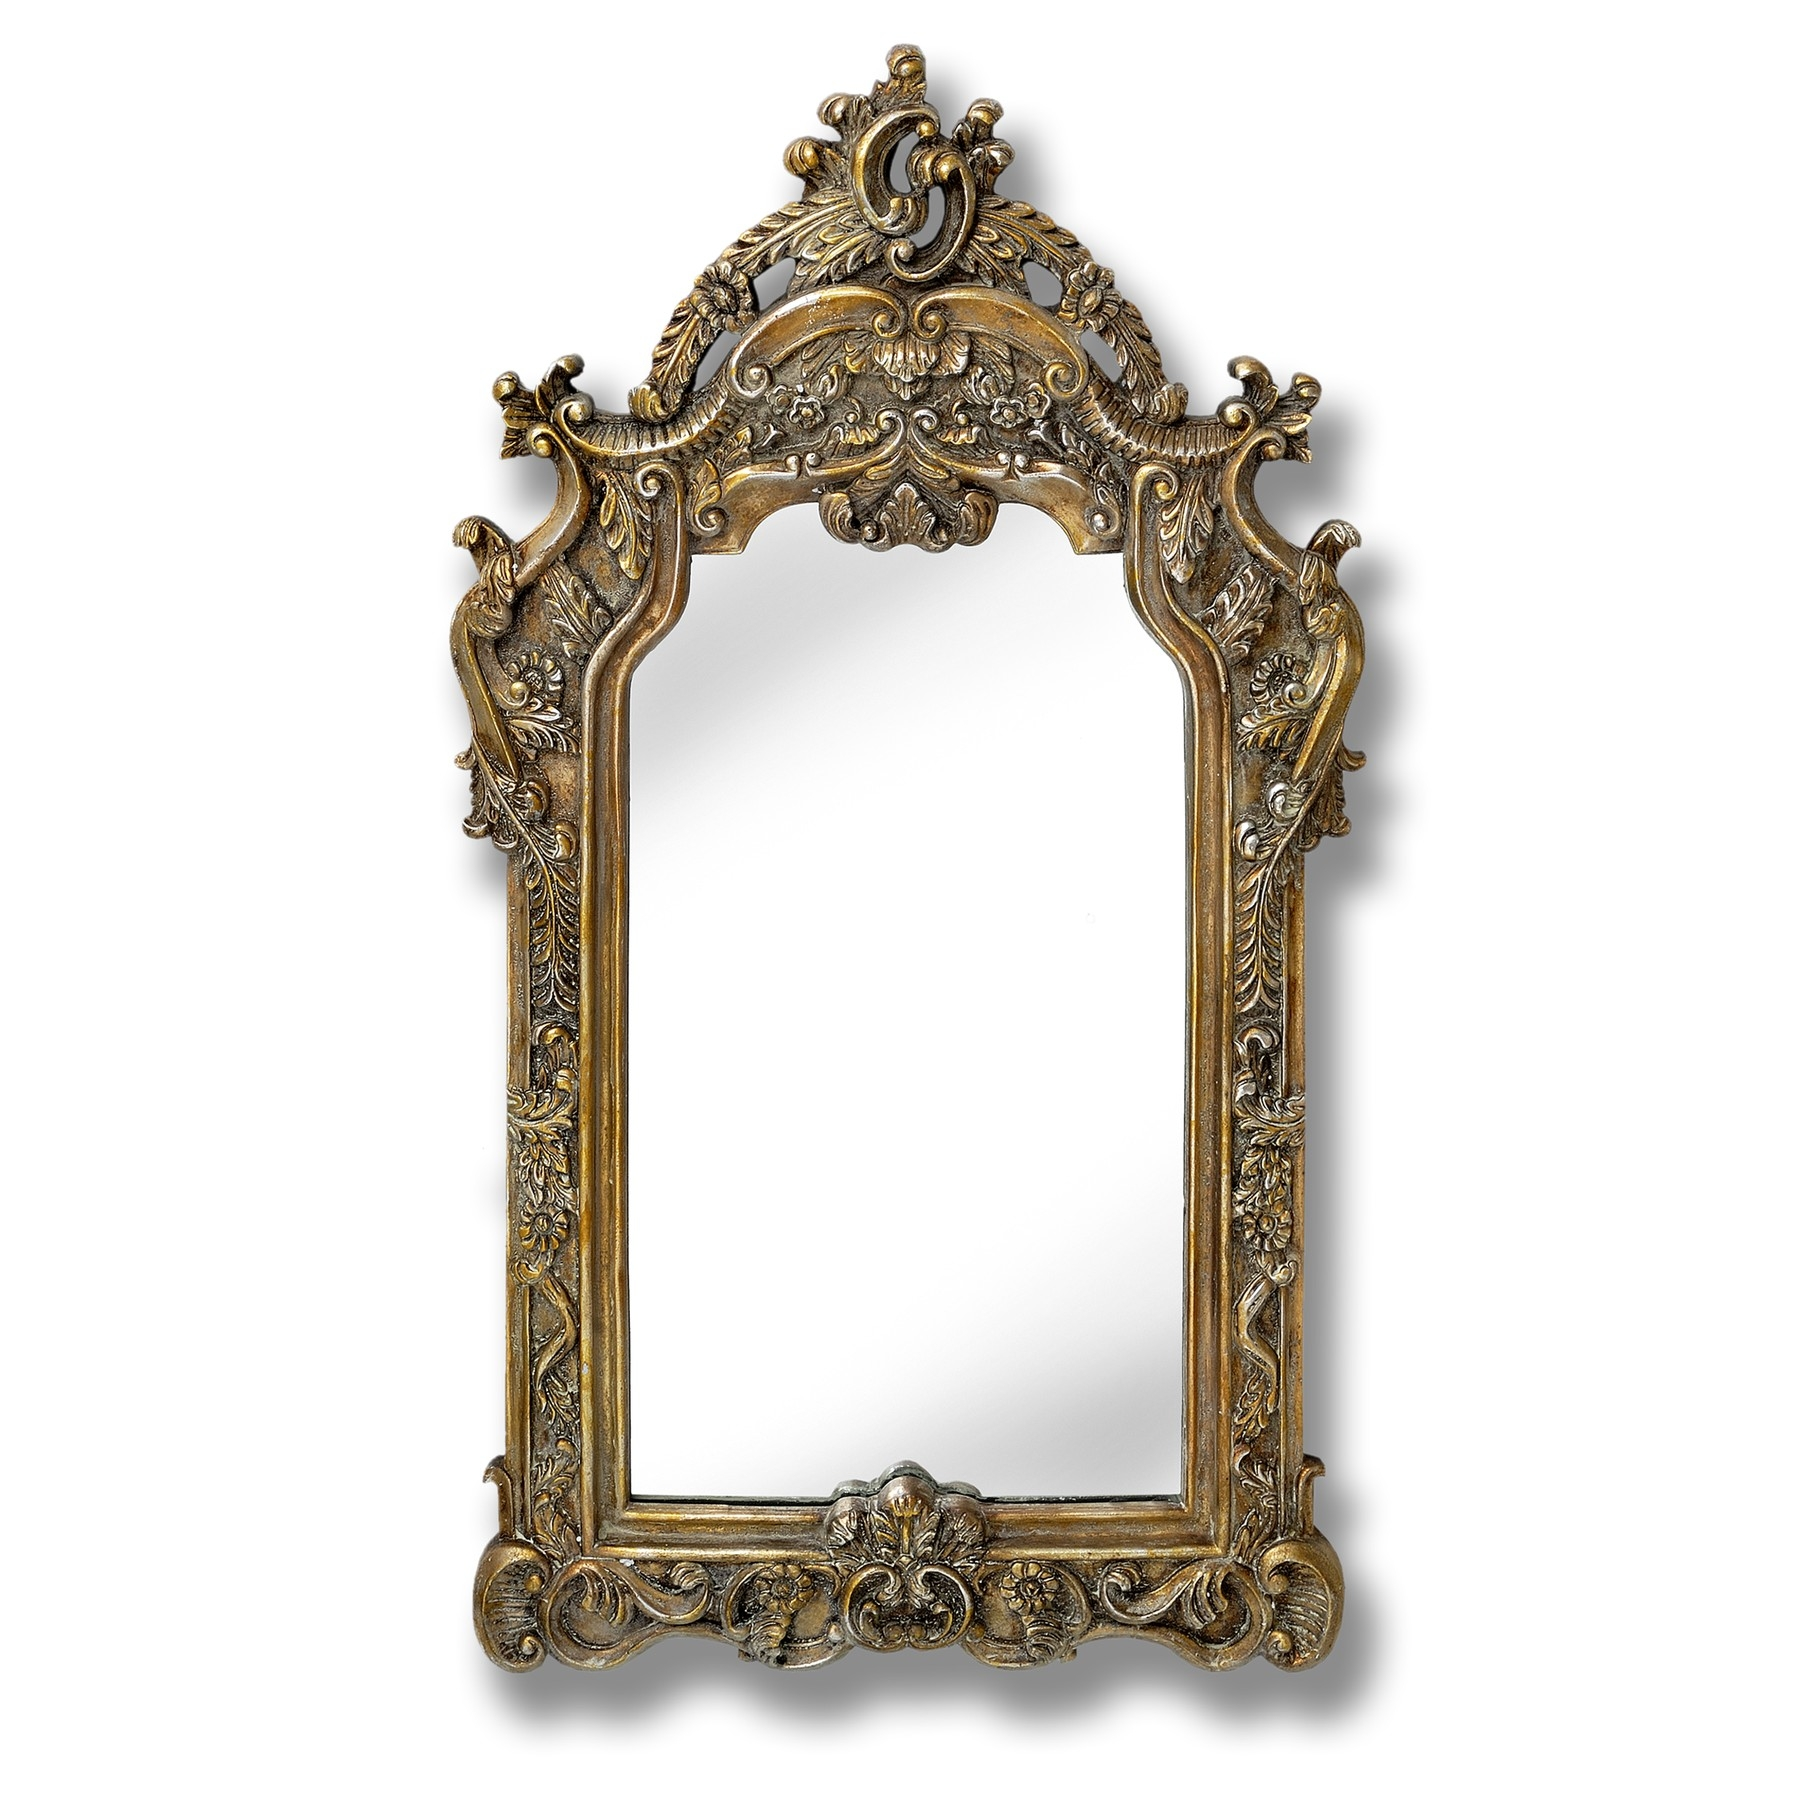 Home Decor Finding Indispensable Criteria For Antique Mirrors With Regard To Elaborate Mirrors (Image 13 of 15)